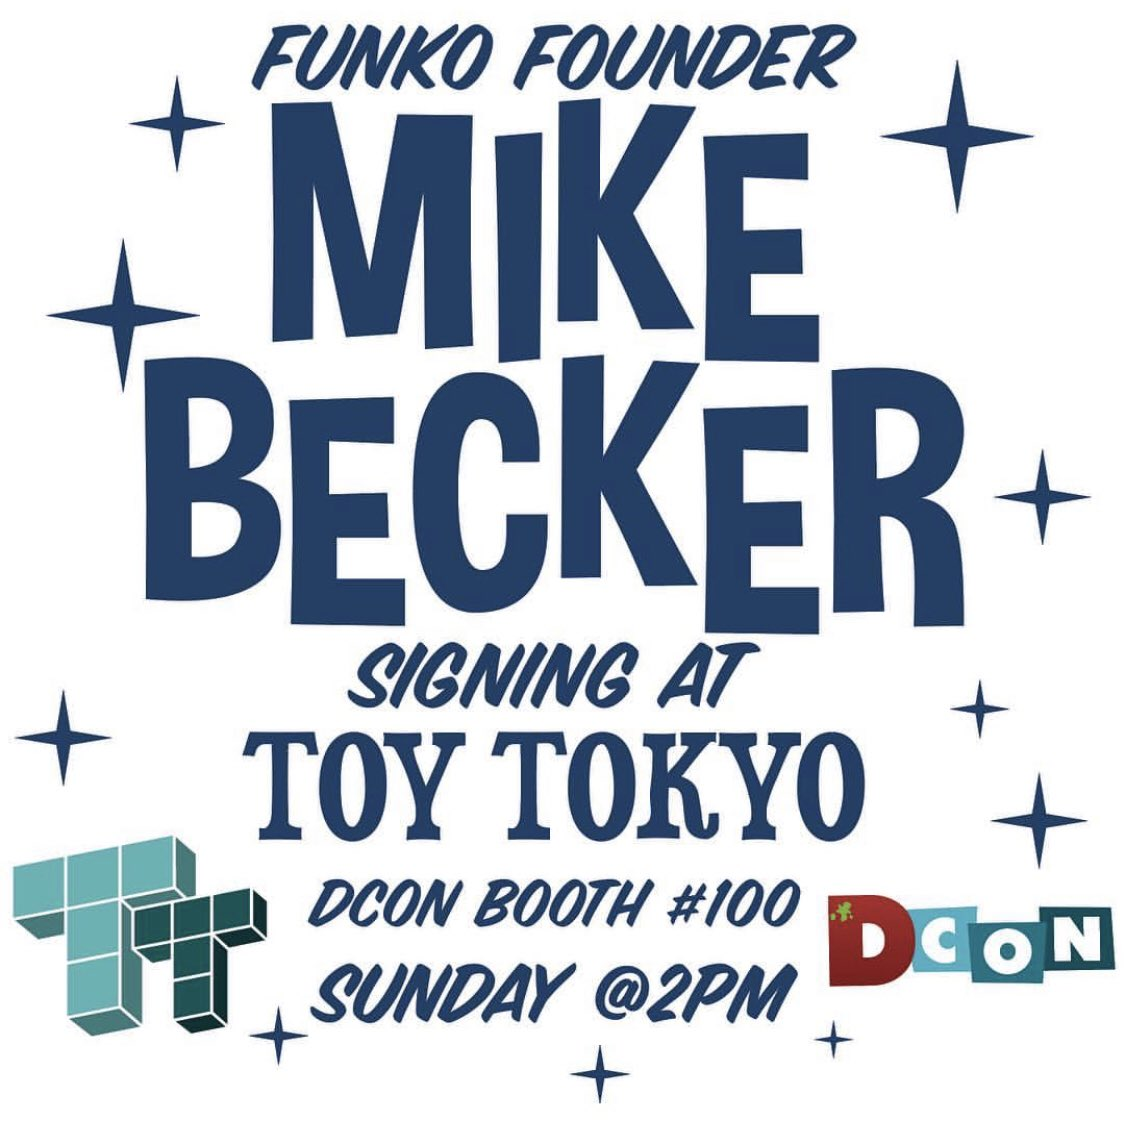 Meet Funko Founder Mike Becker at our booth this Sunday at @DesignerCon! ✨💫